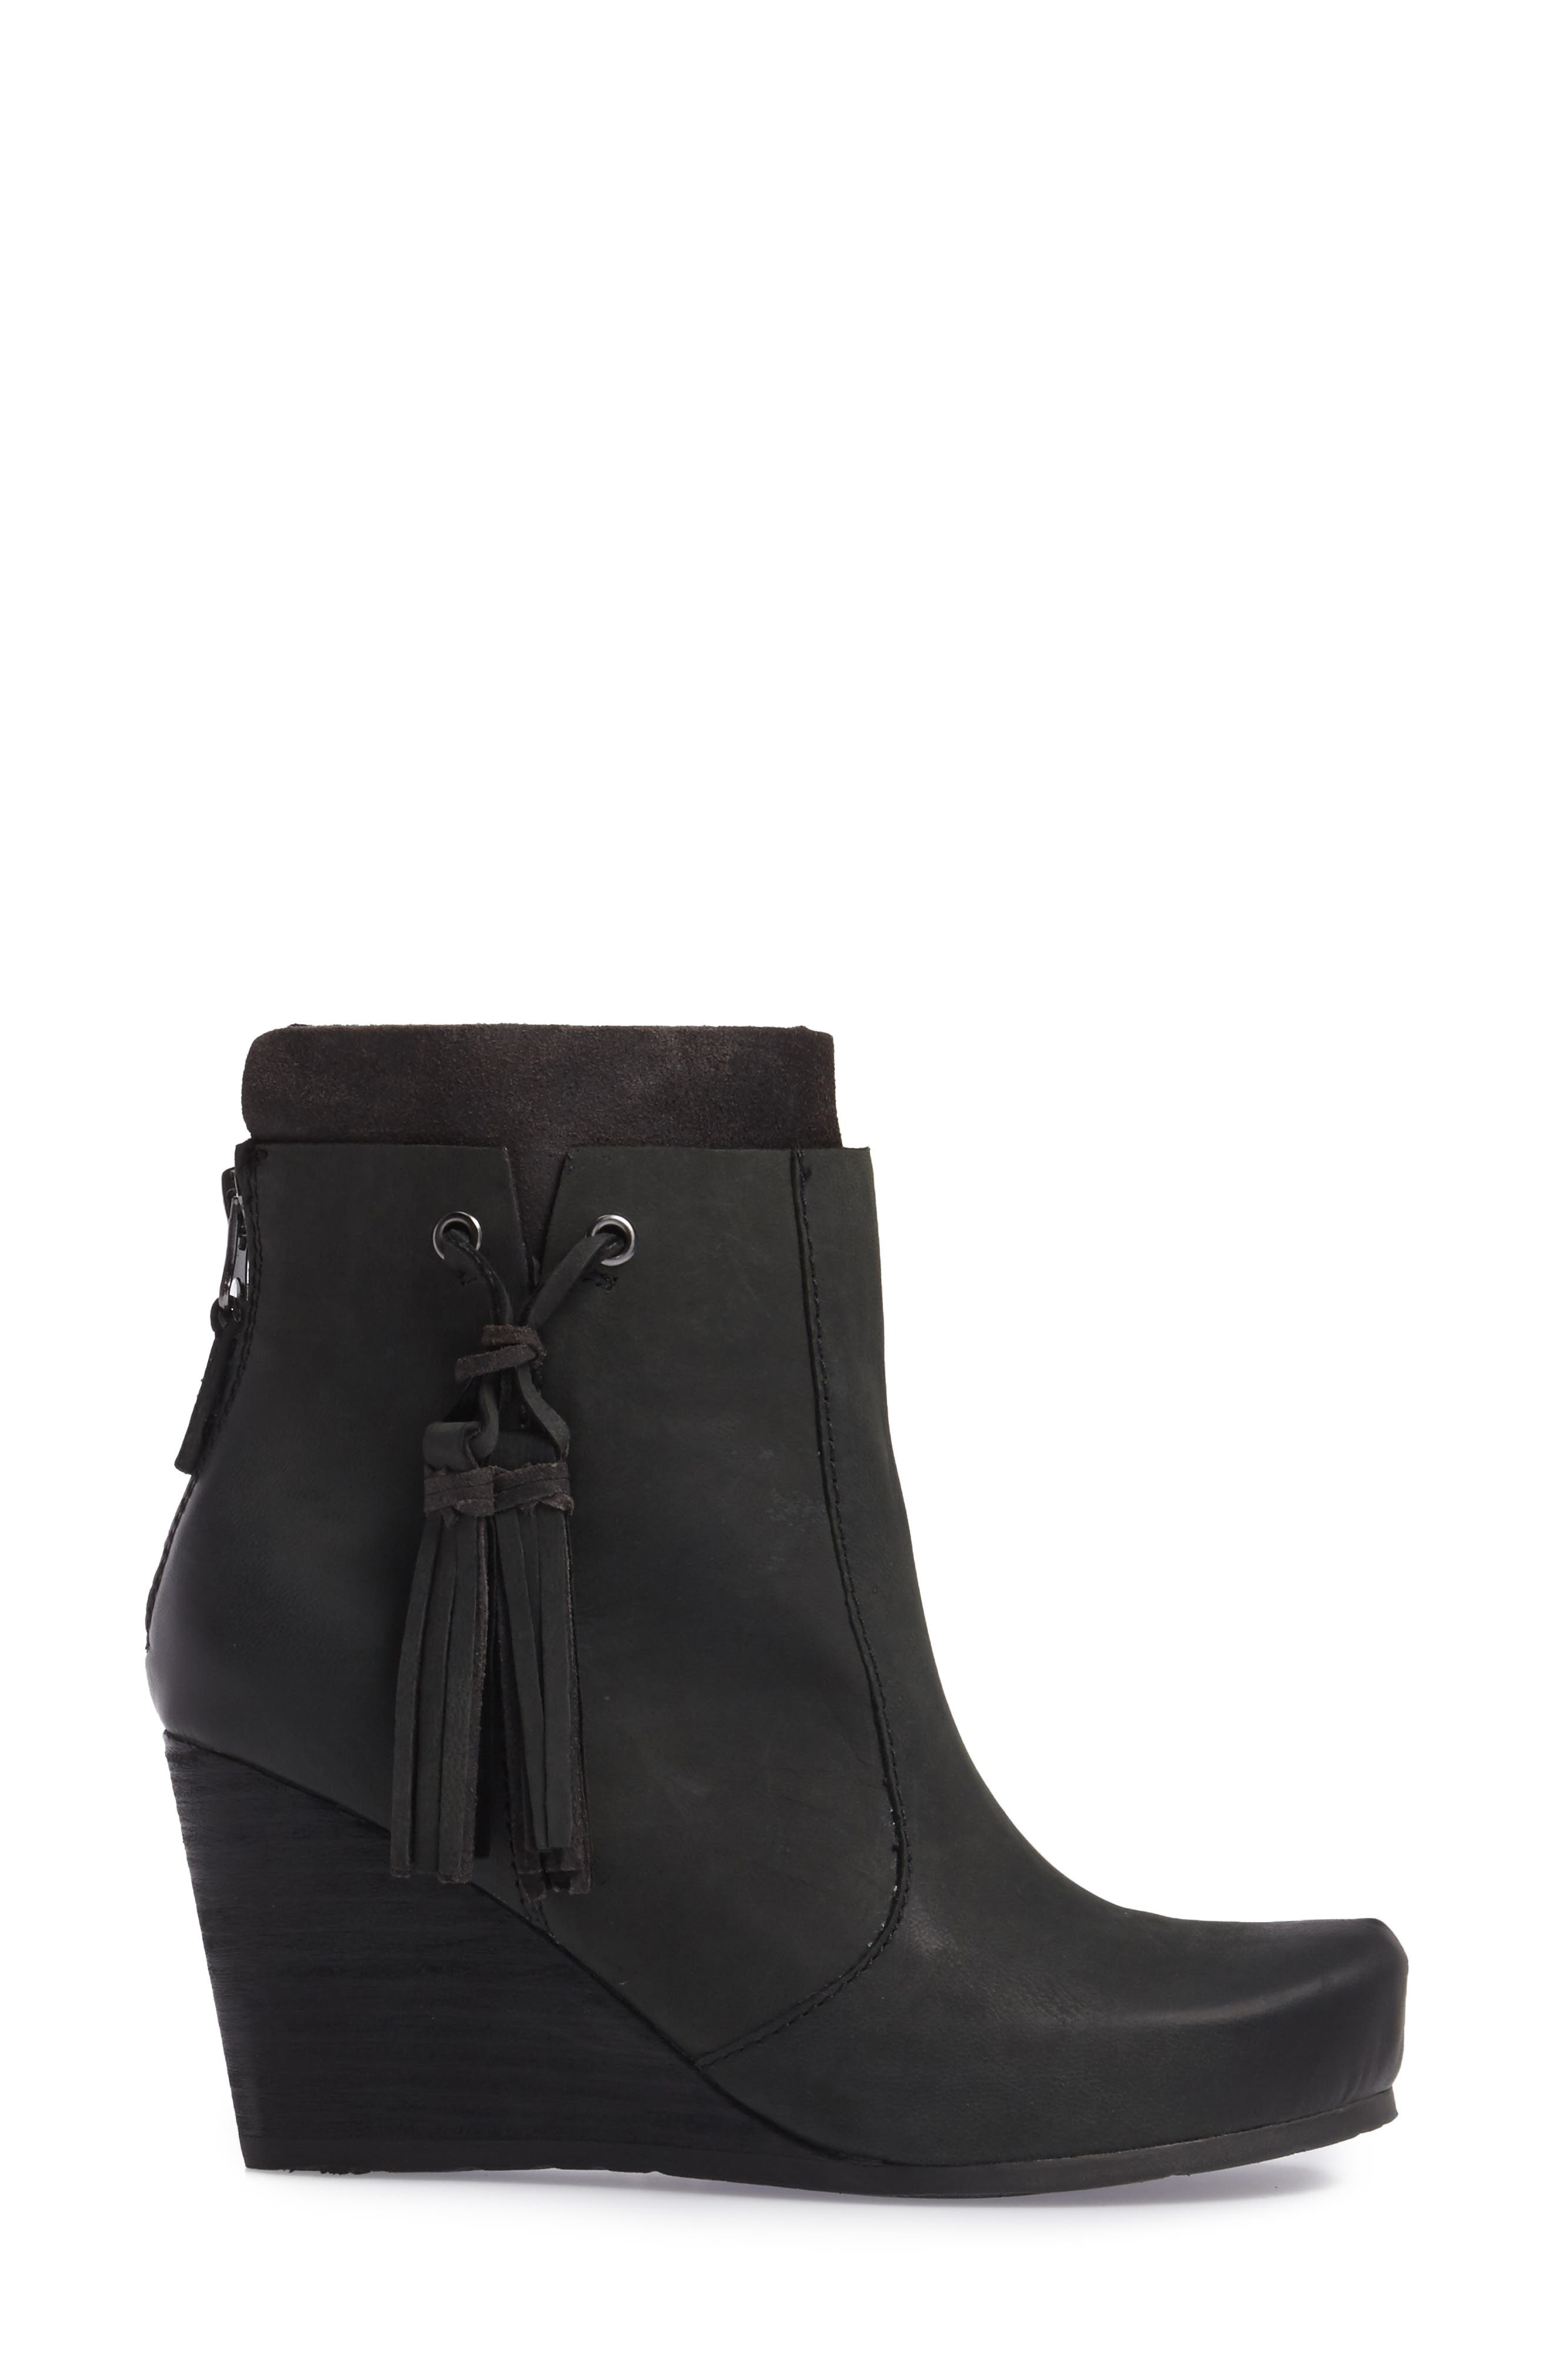 Alternate Image 3  - OTBT Vagary Wedge Bootie (Women)